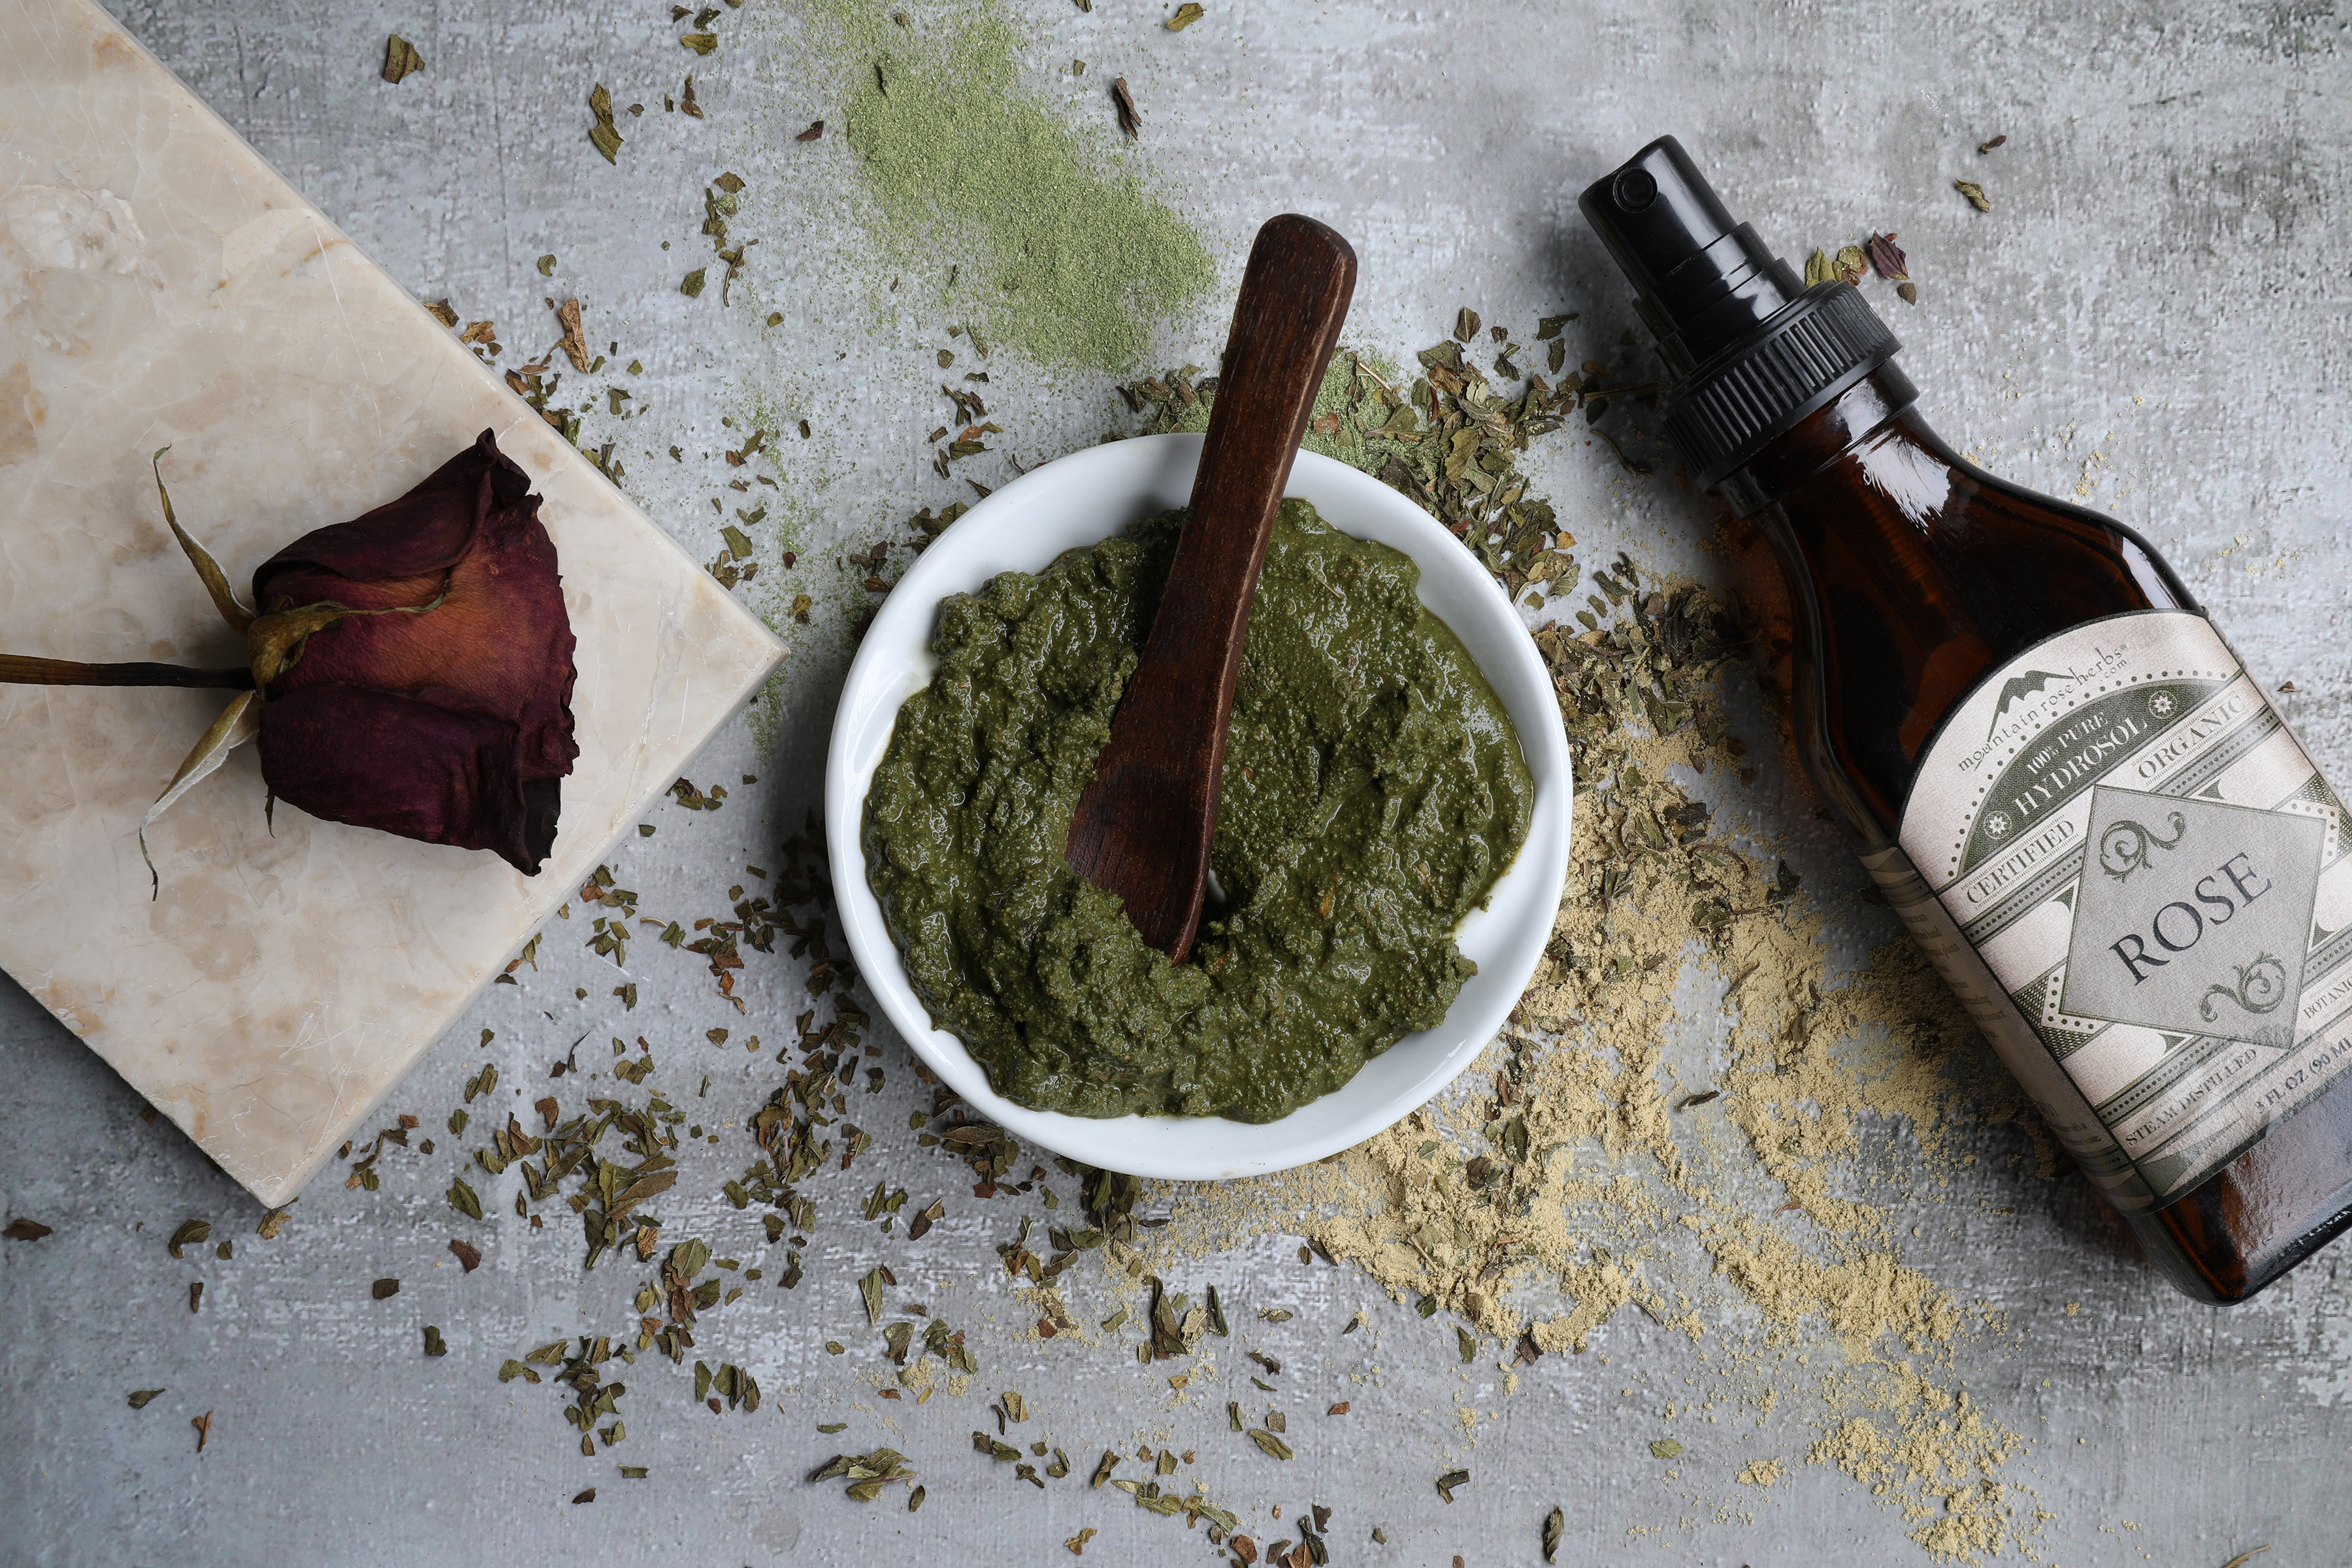 Wooden spoon mixing ayurvedic face mask with rose hydrosol and powders